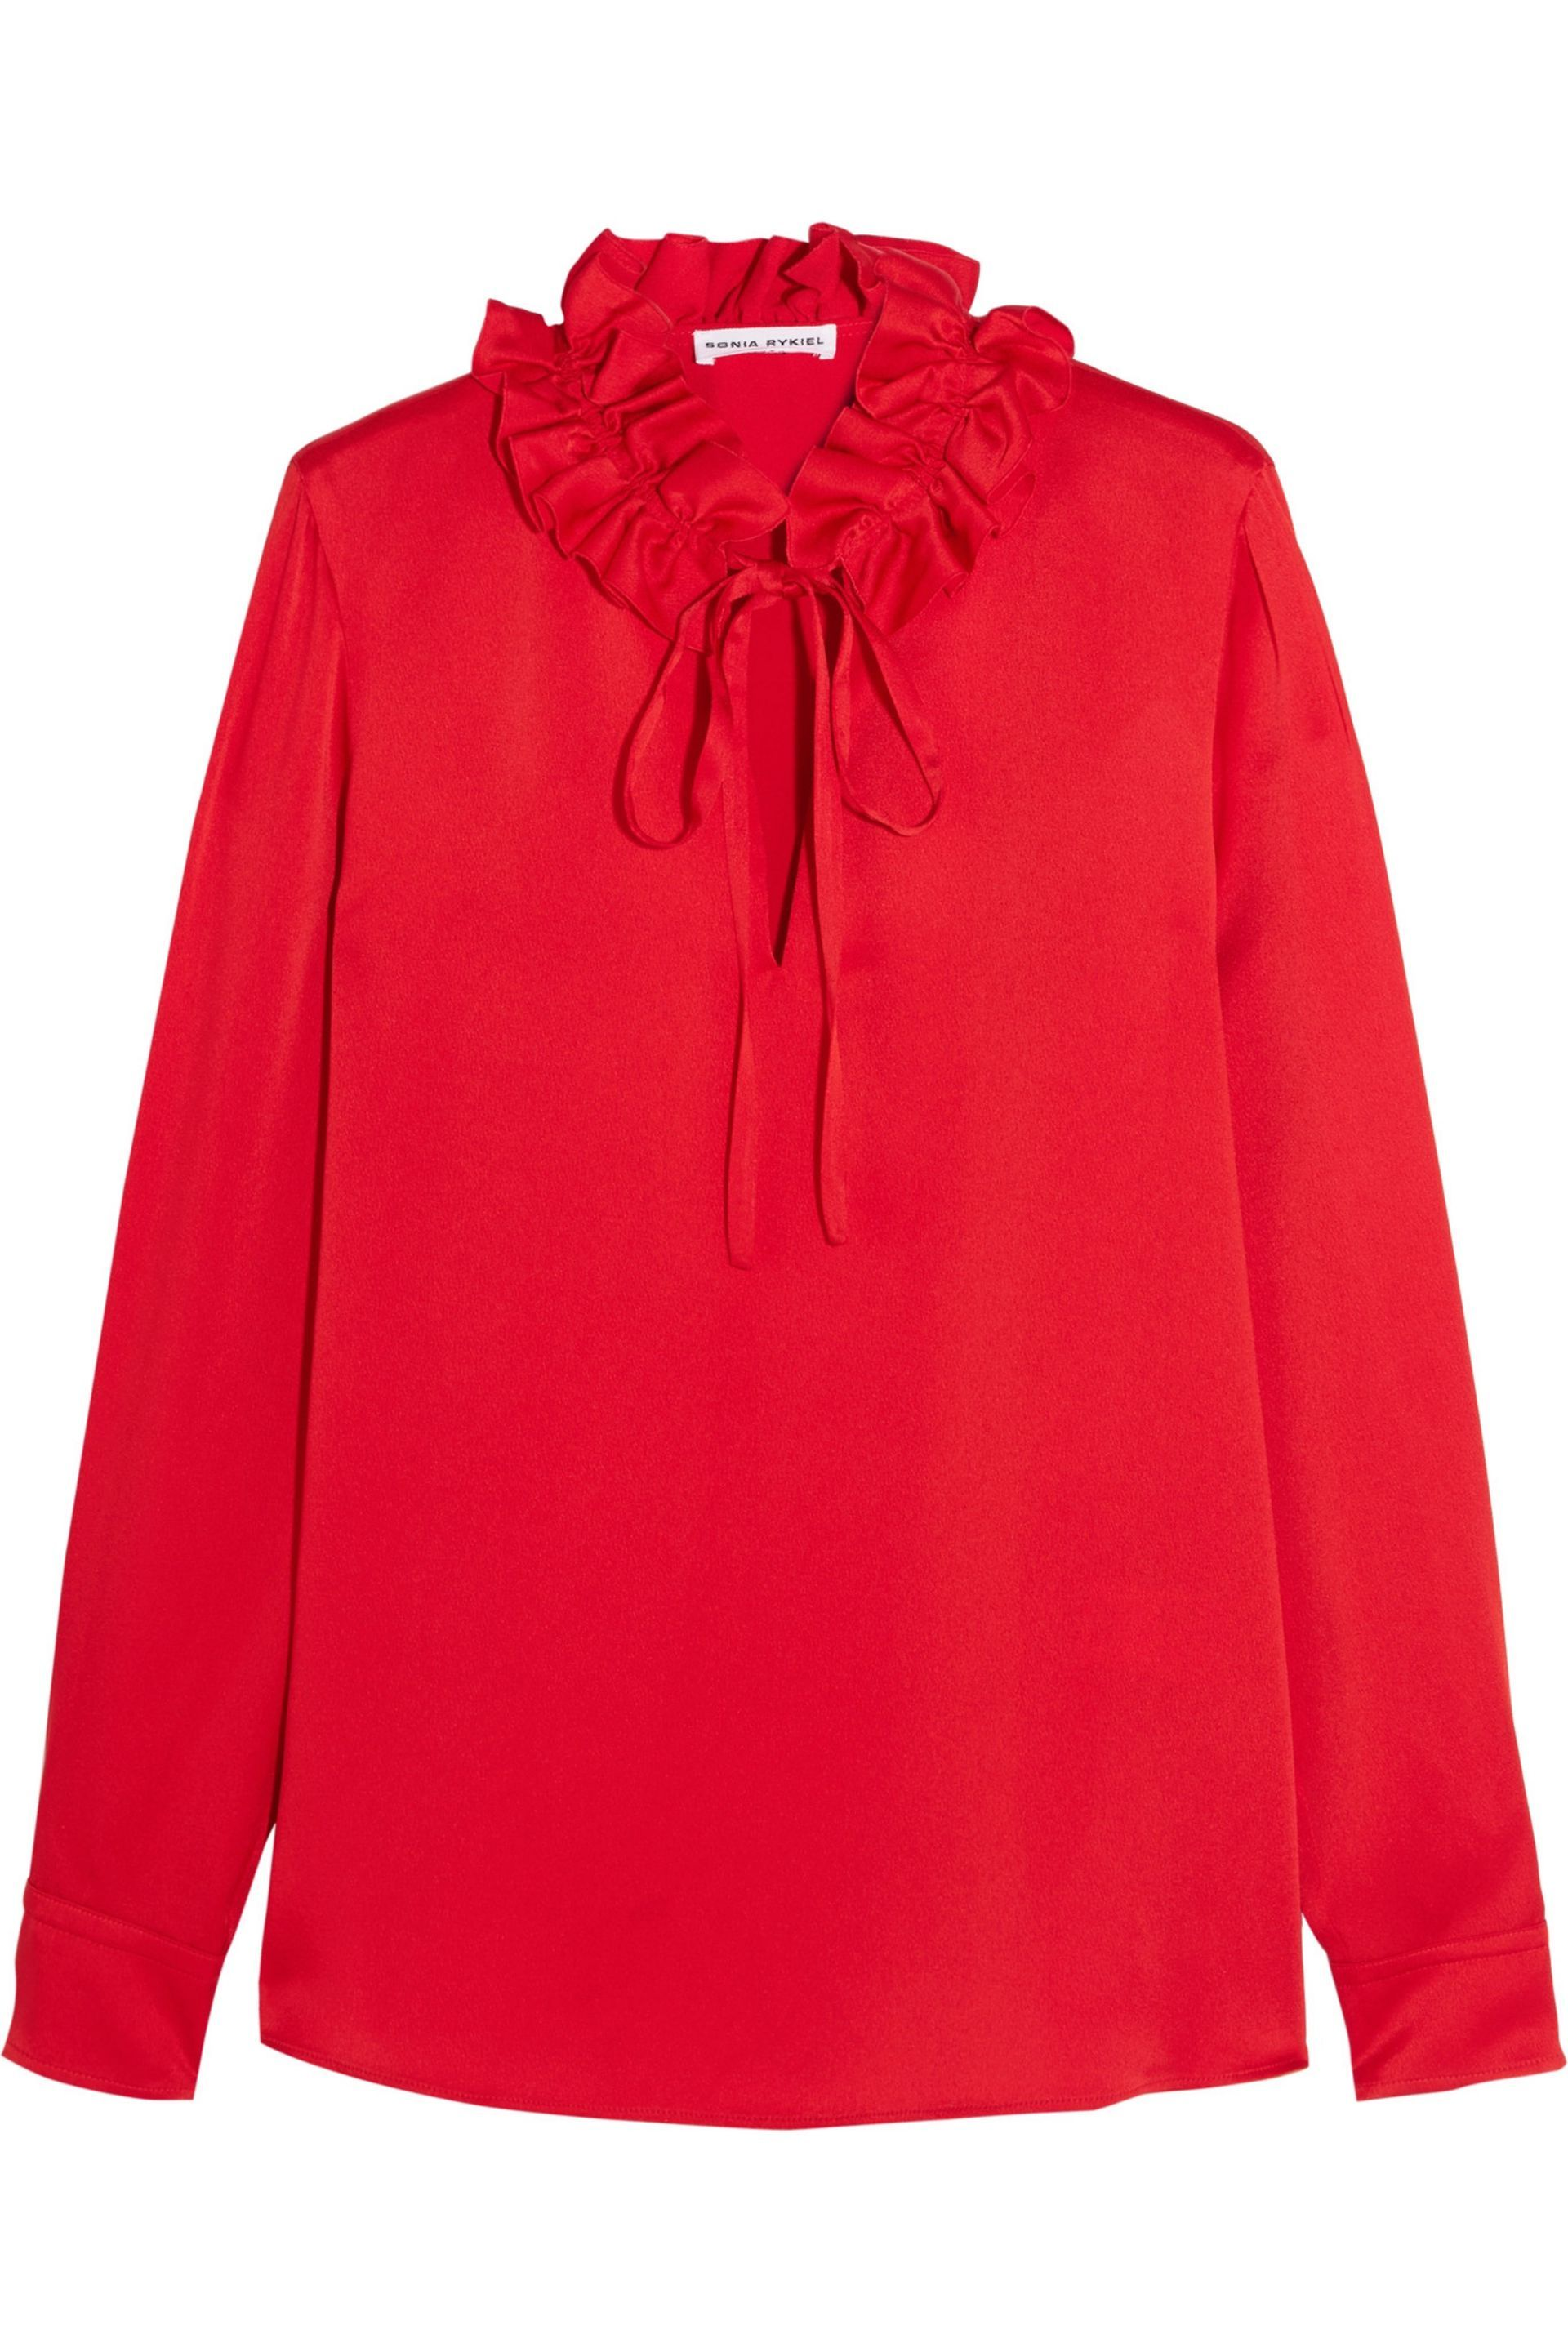 Ruffled crepe de chine blouse | SONIA RYKIEL | Sale up to 70% off